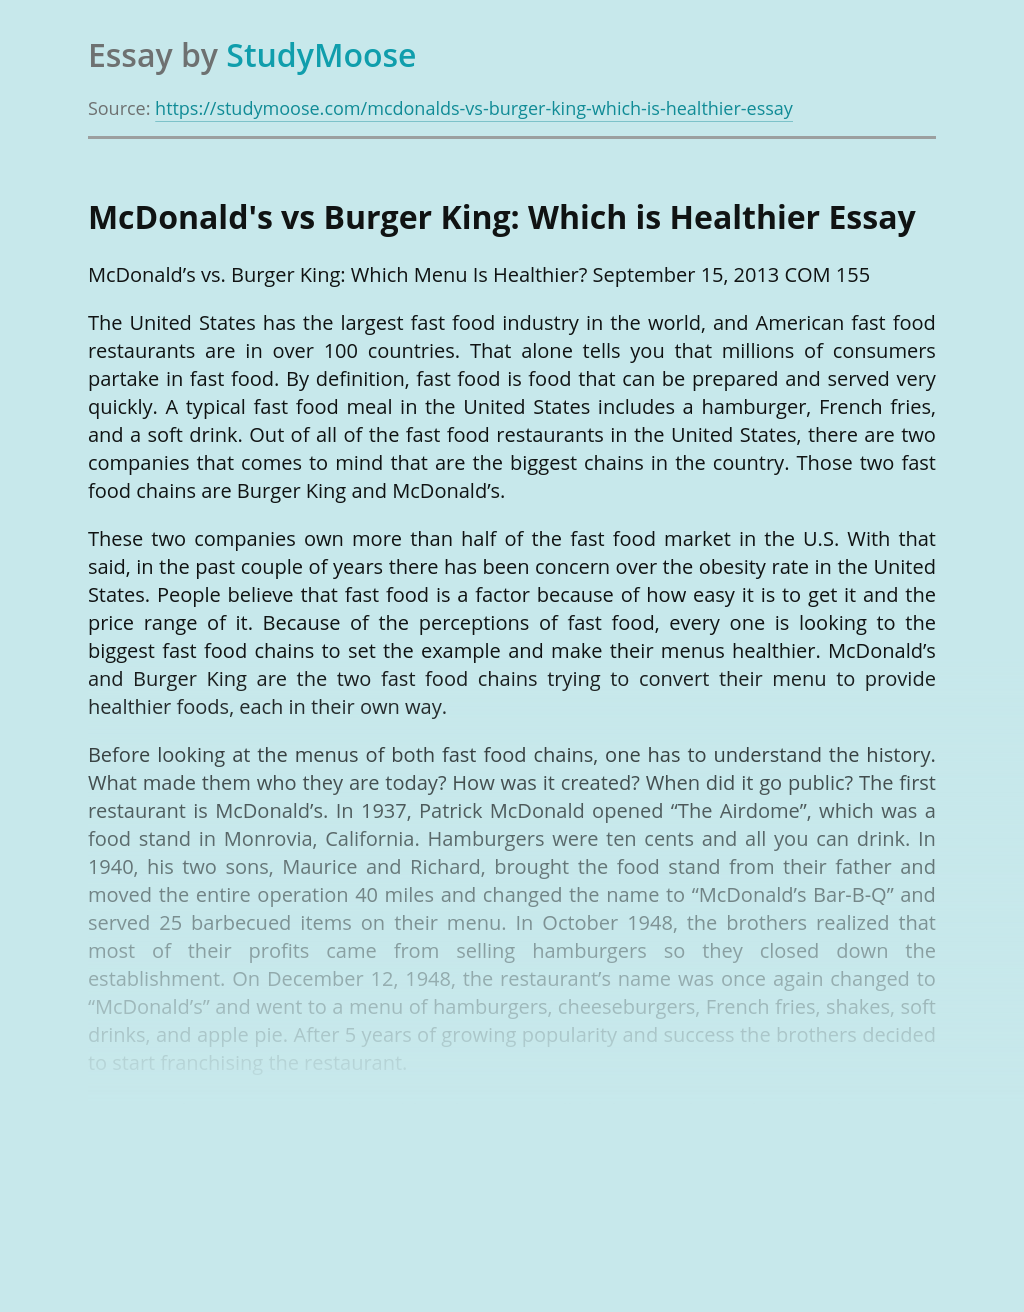 McDonald's vs Burger King: Which is Healthier